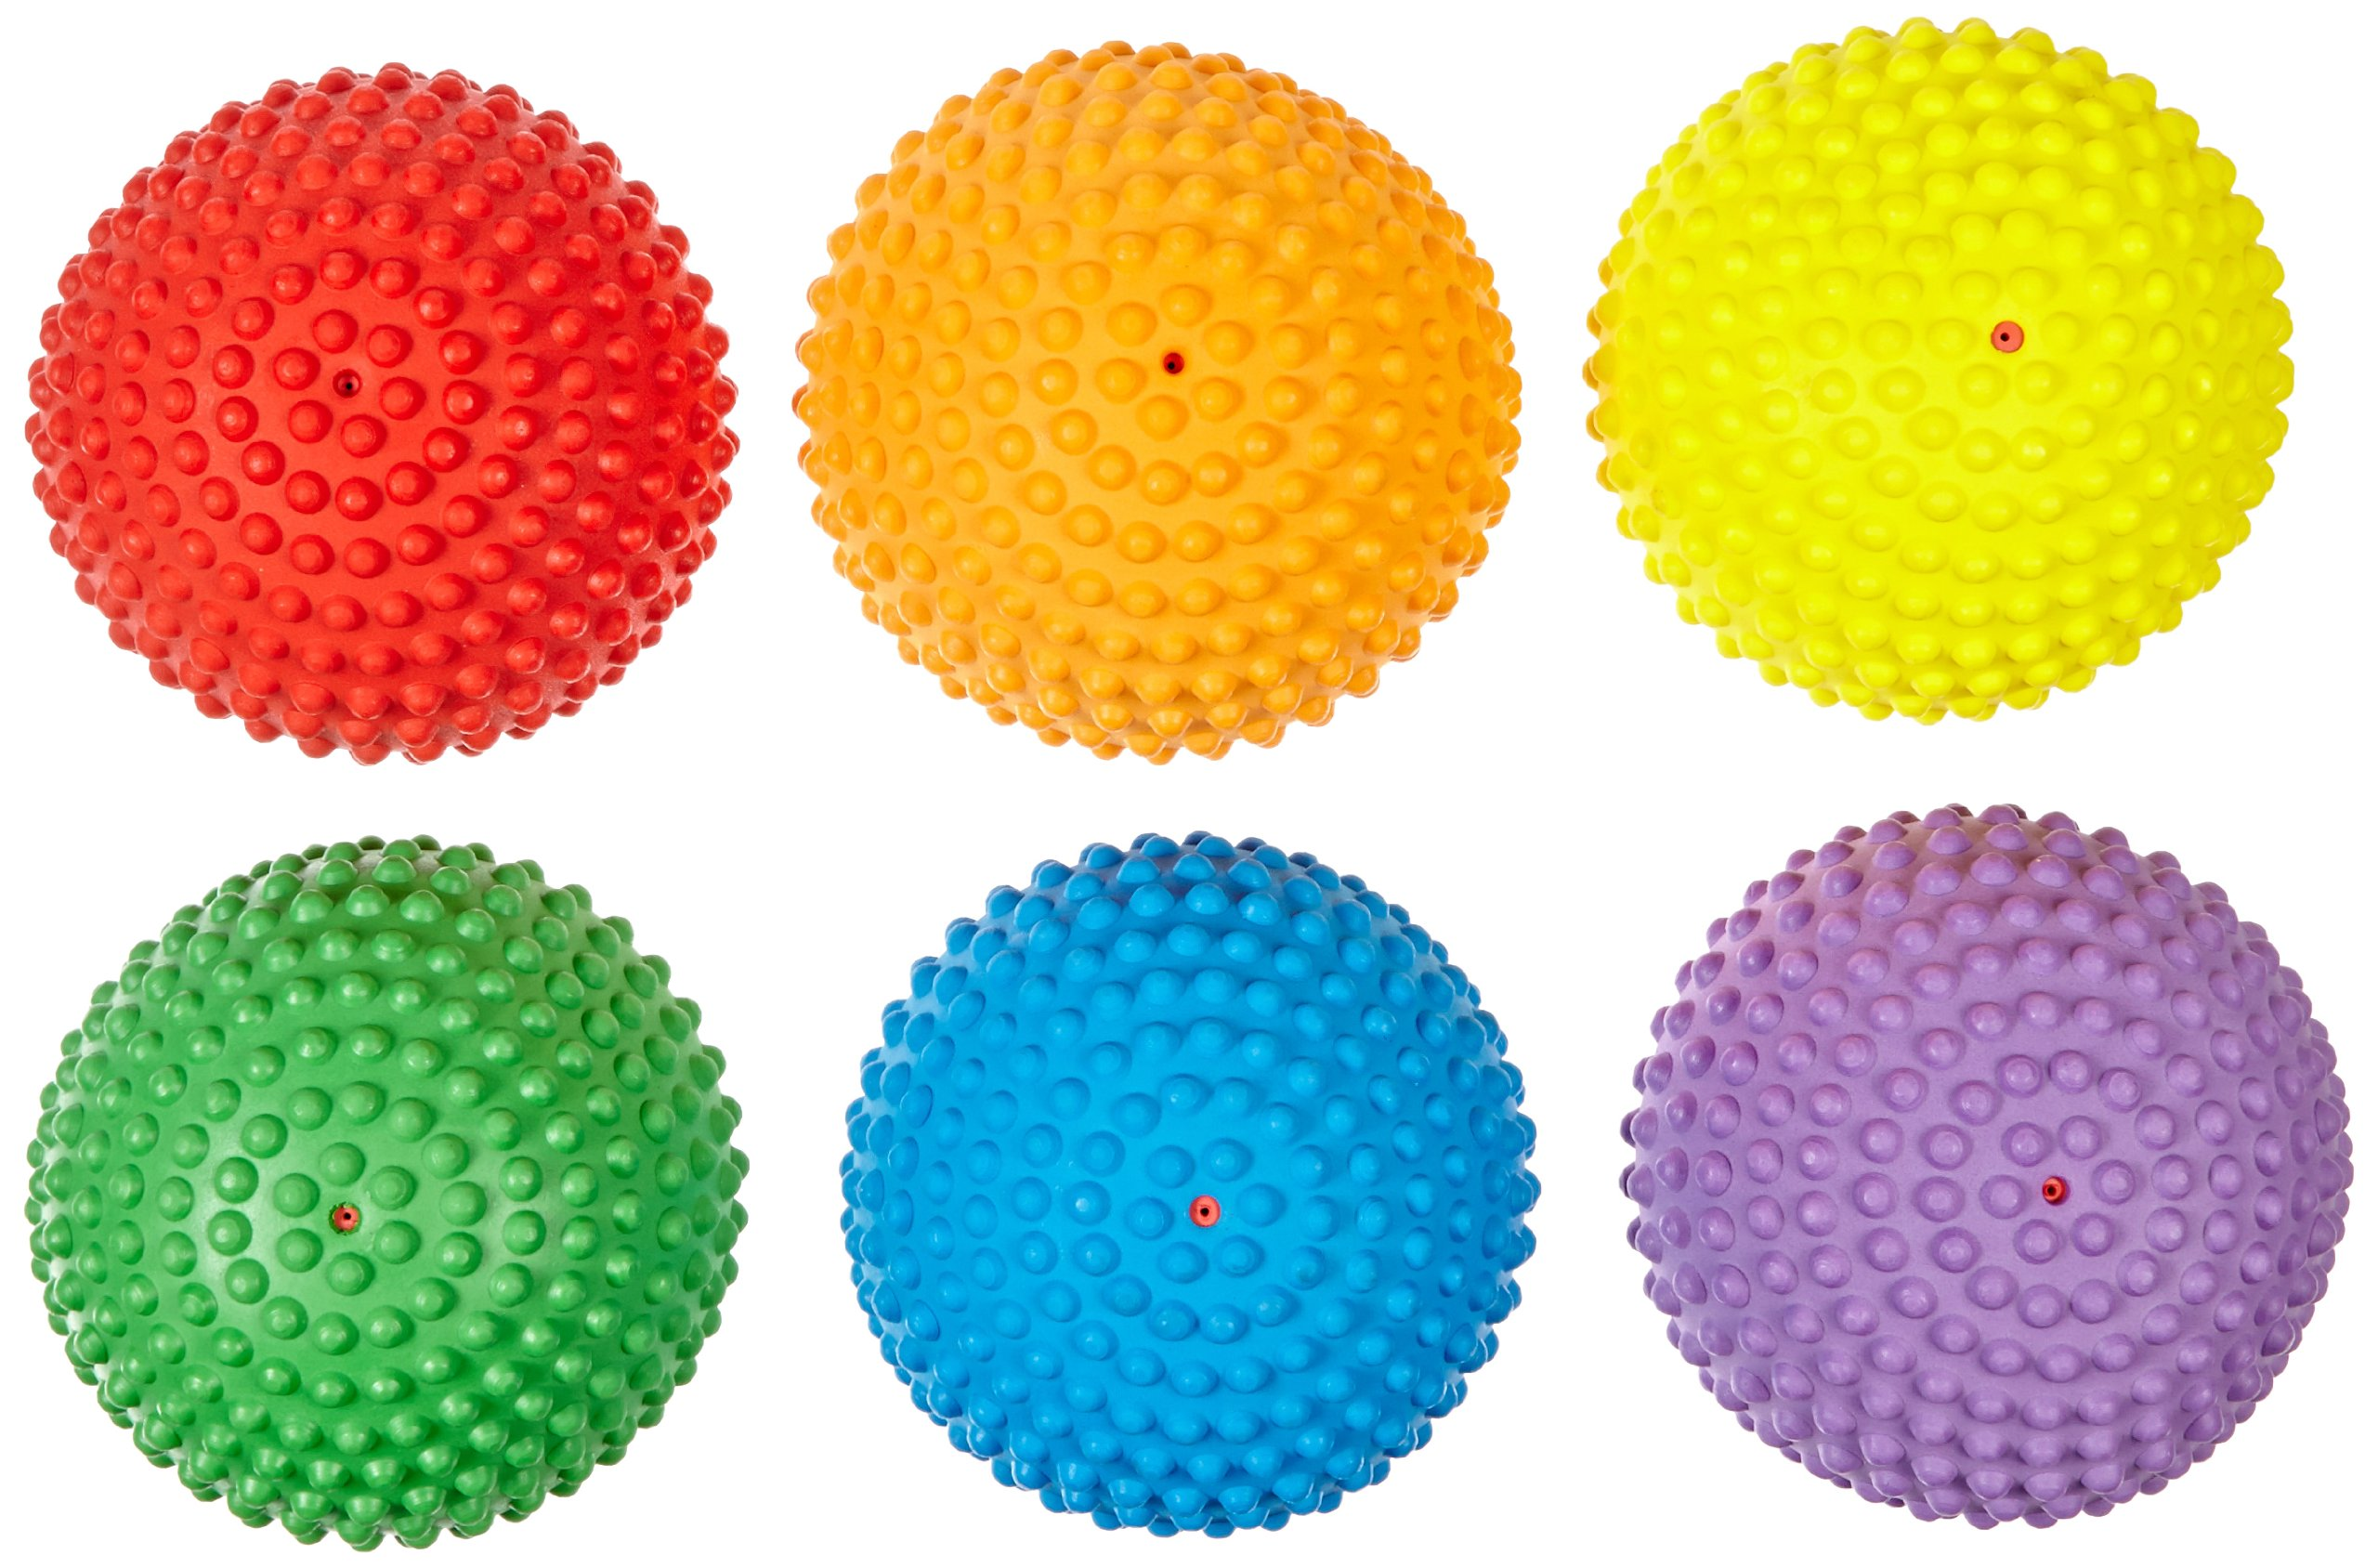 Abilitations Tactile Step-N-Stones Walk-On Domes - Set of 6 - 6 Colors - 009097